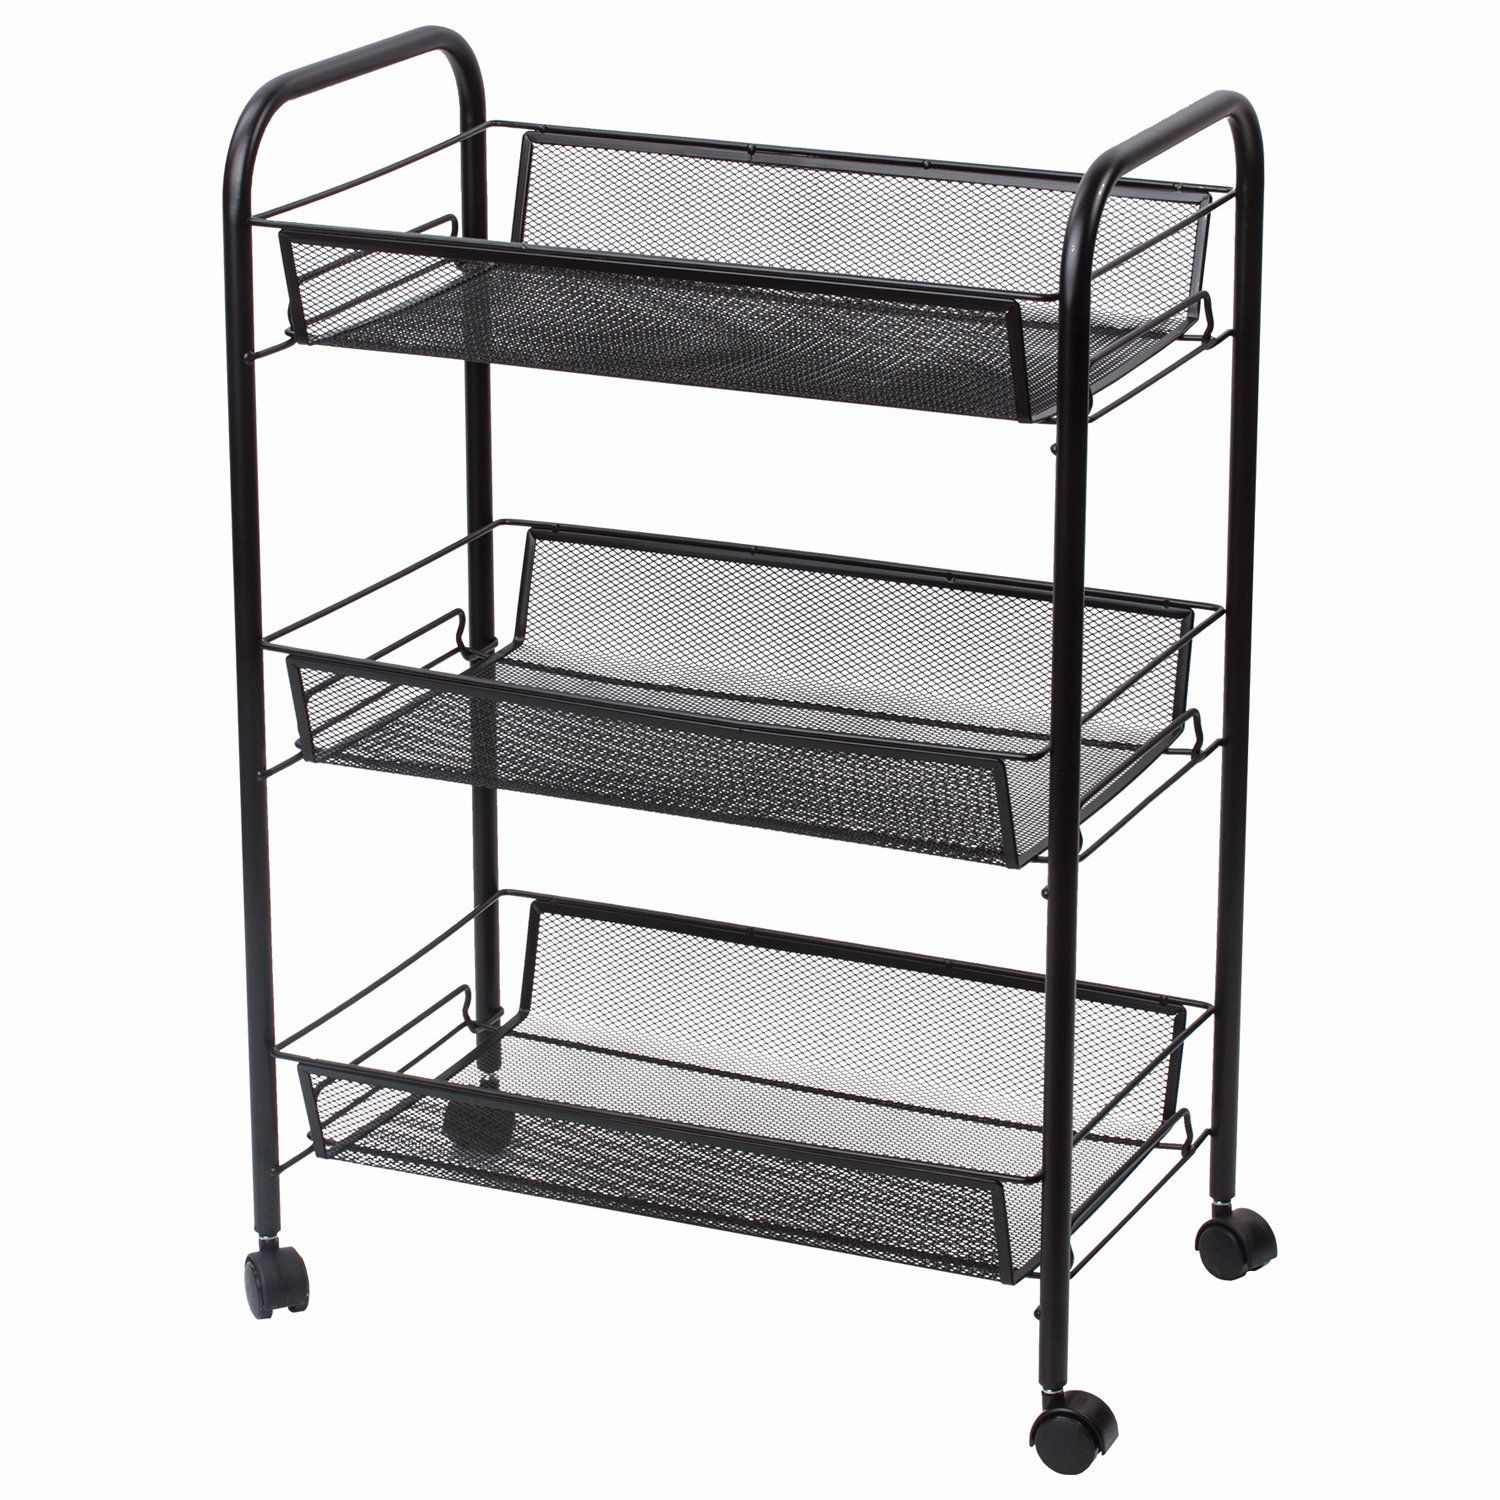 BRABIX / Office-household shelf (trolley) 3 tiers, on wheels, metal, black, 43.5х26х62.5 cm